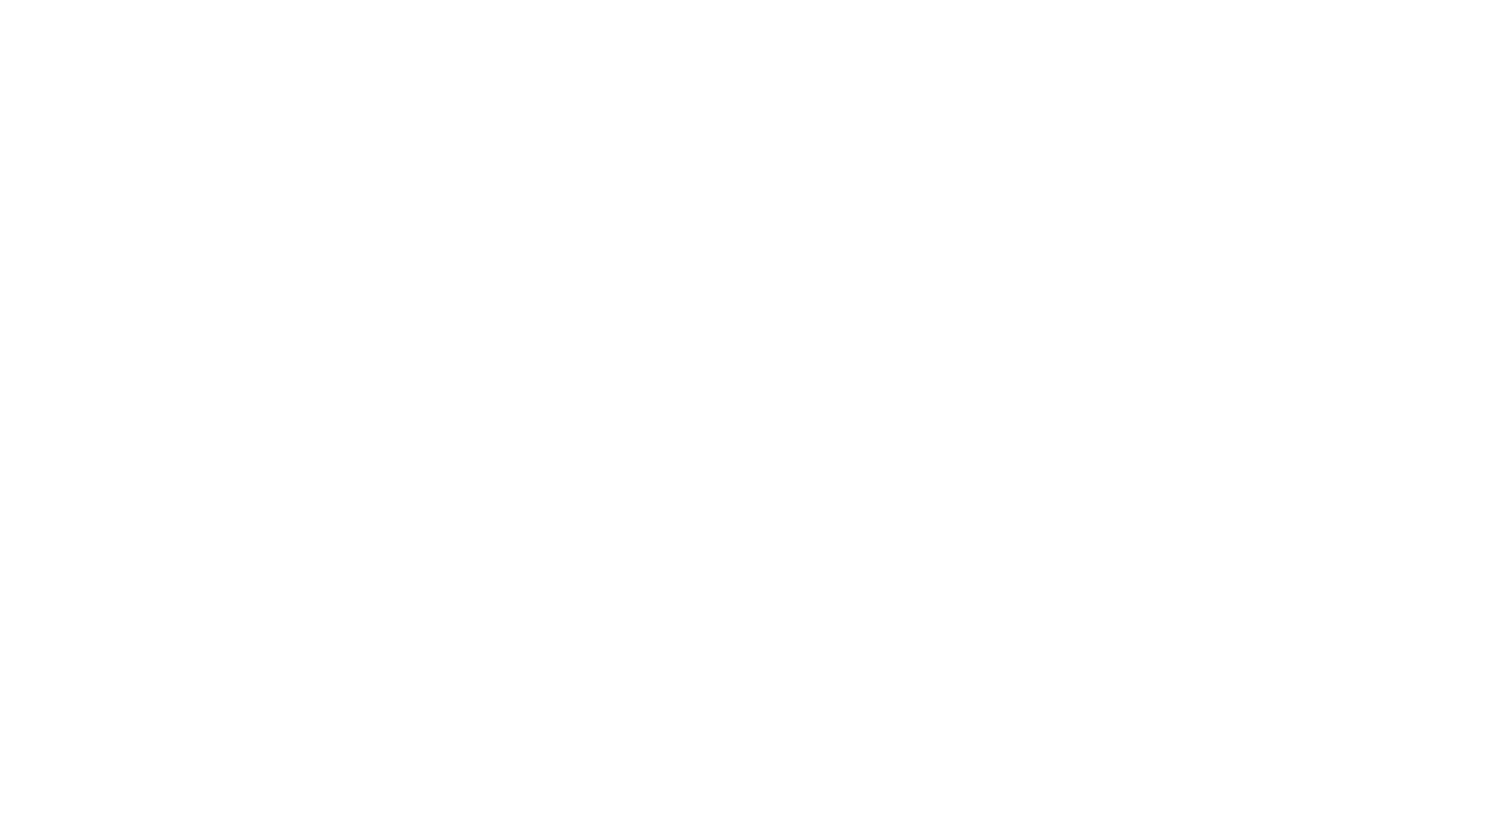 Krueger Family Law, P.C.